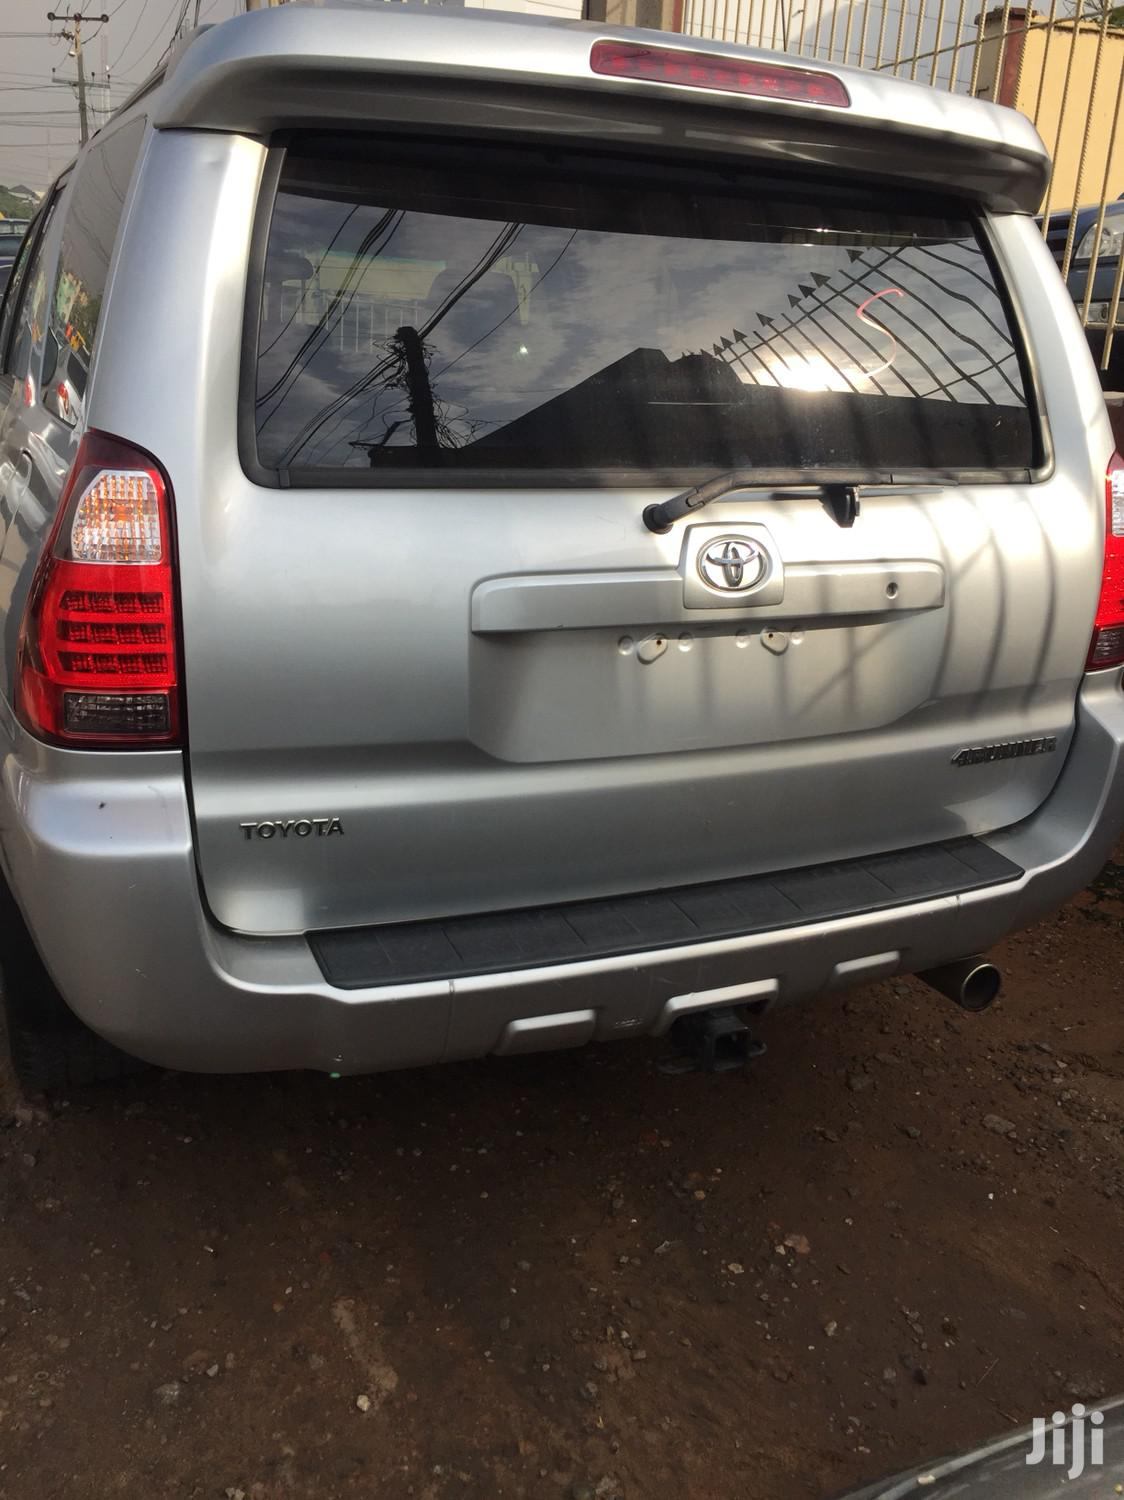 Toyota 4-Runner 2006 Limited 4x4 V6 Silver   Cars for sale in Ikeja, Lagos State, Nigeria